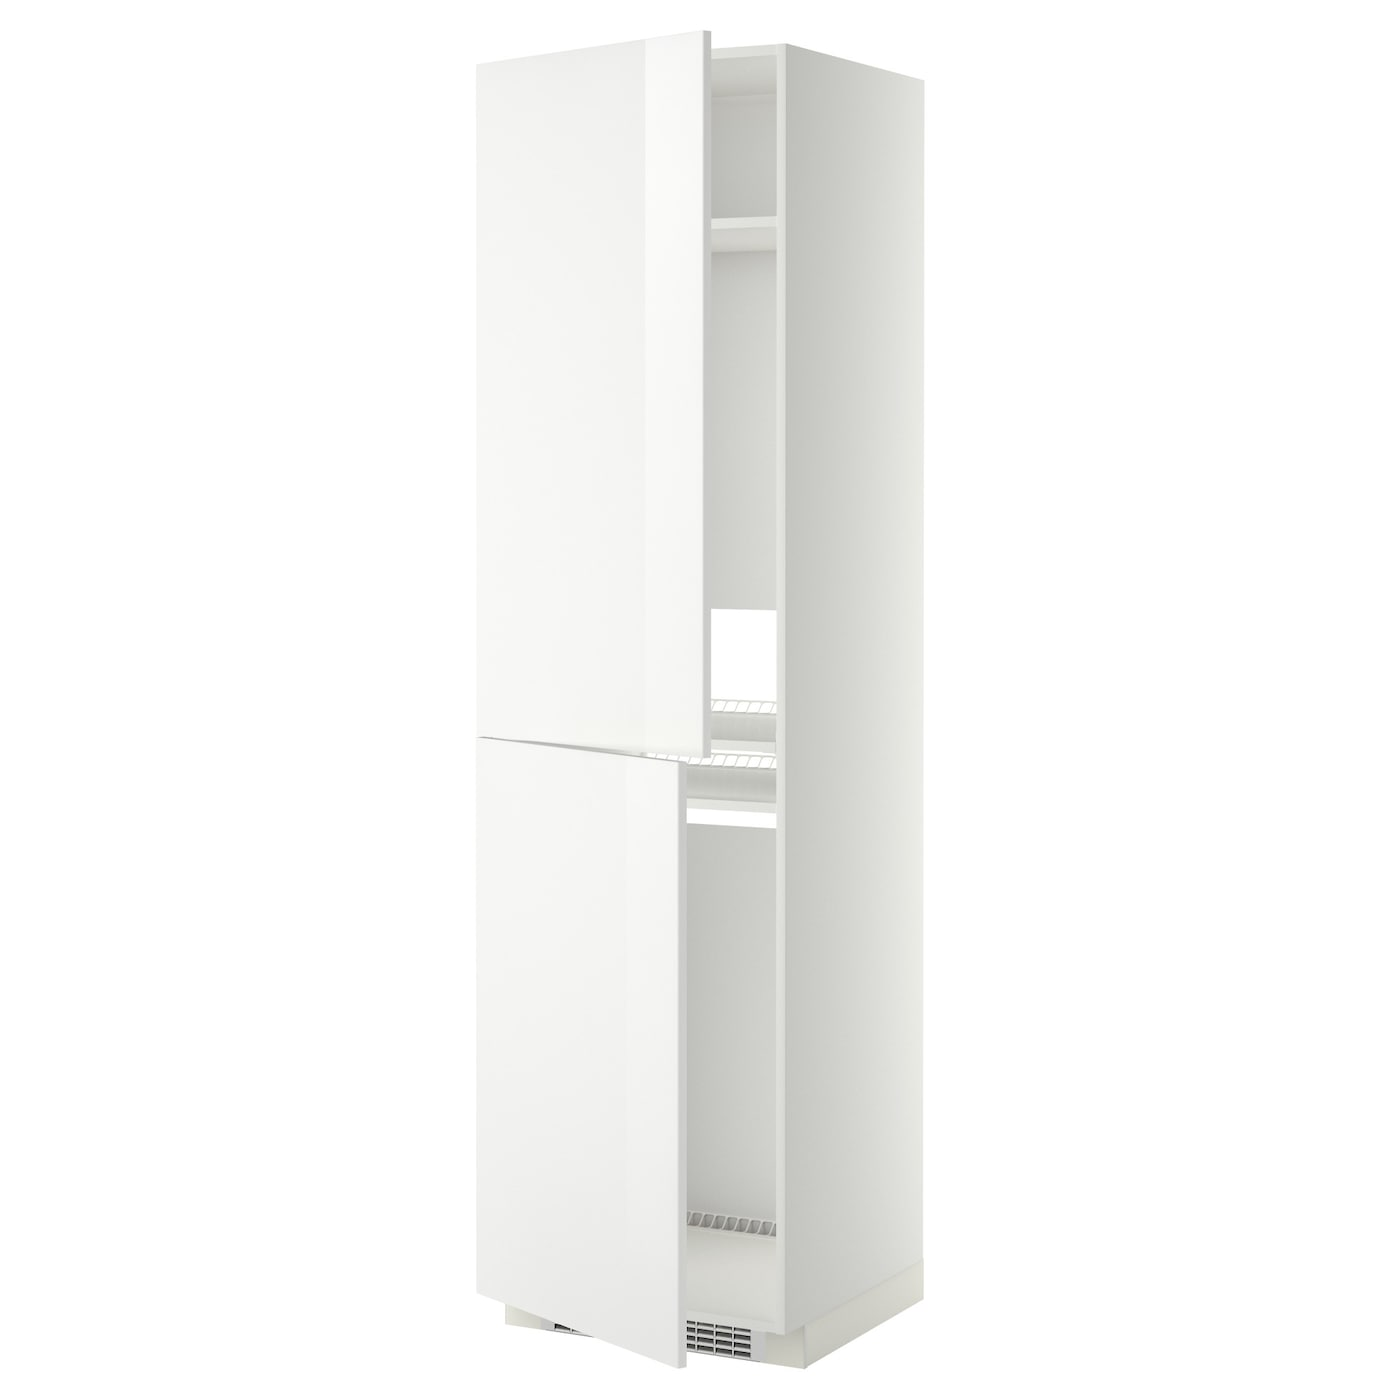 metod armoire pour r frig cong lateur blanc ringhult blanc 60x60x220 cm ikea. Black Bedroom Furniture Sets. Home Design Ideas